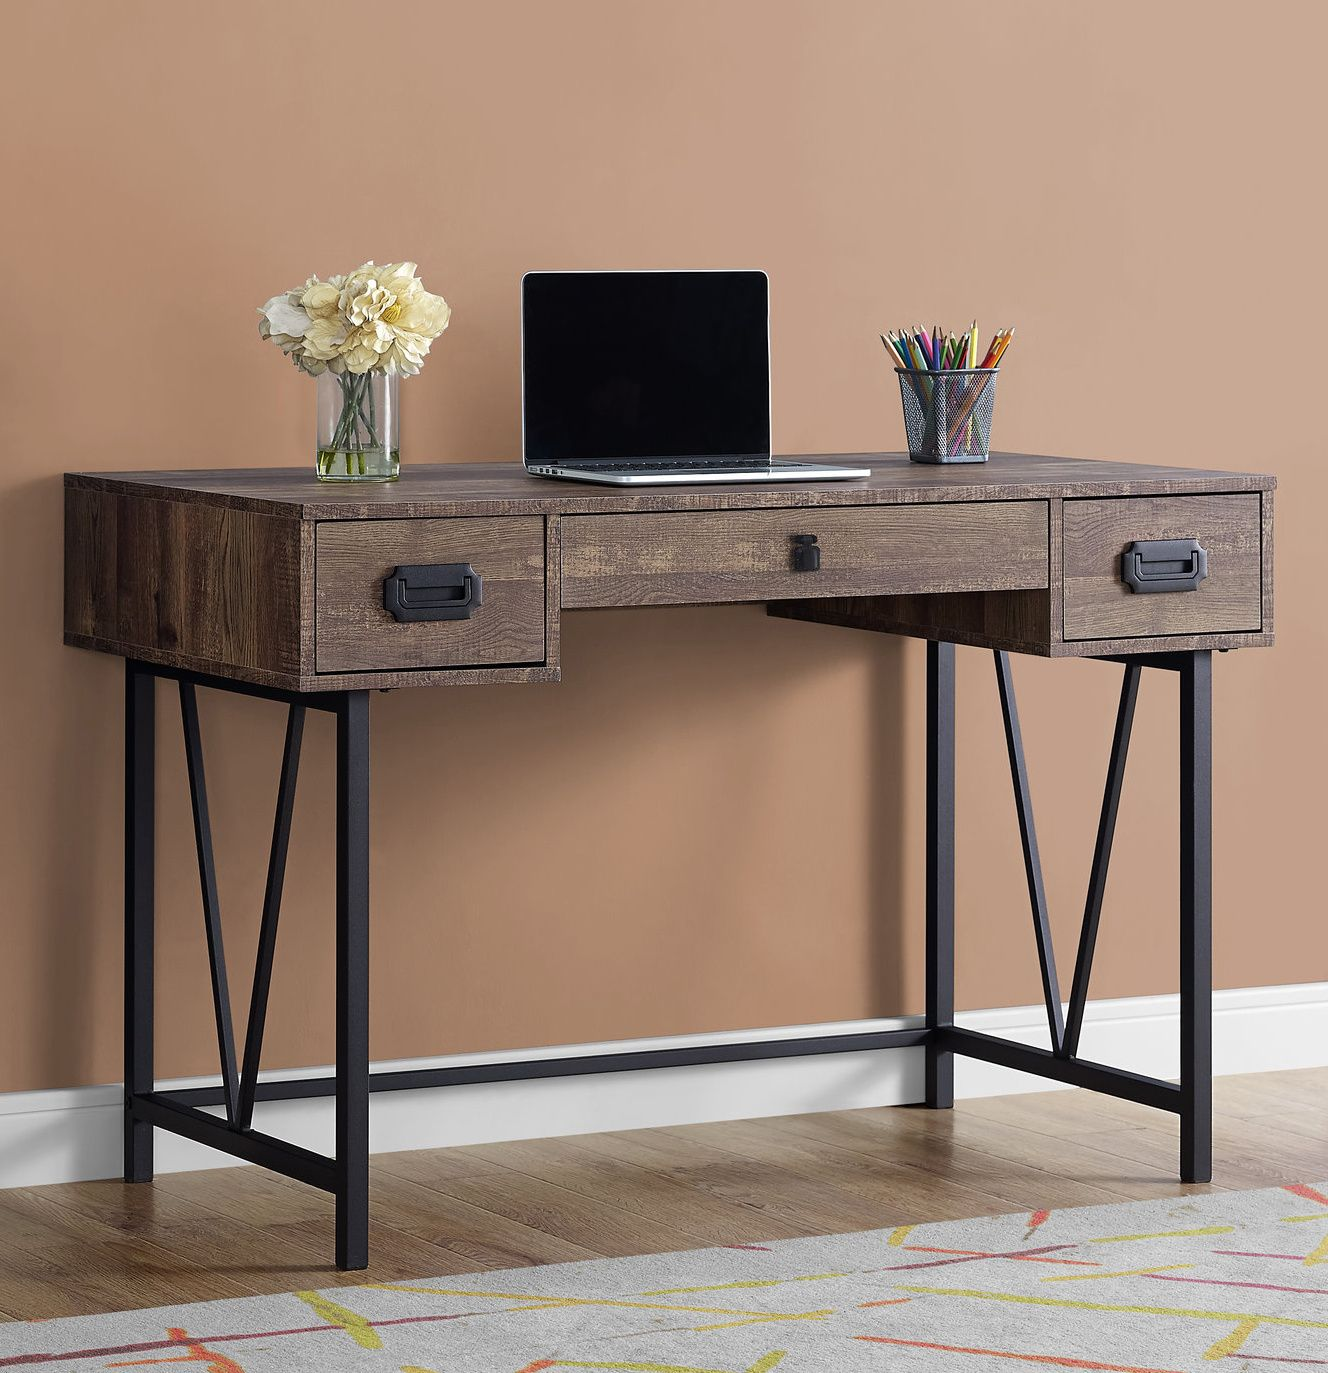 Farmhouse style for the home office rustic computer desk